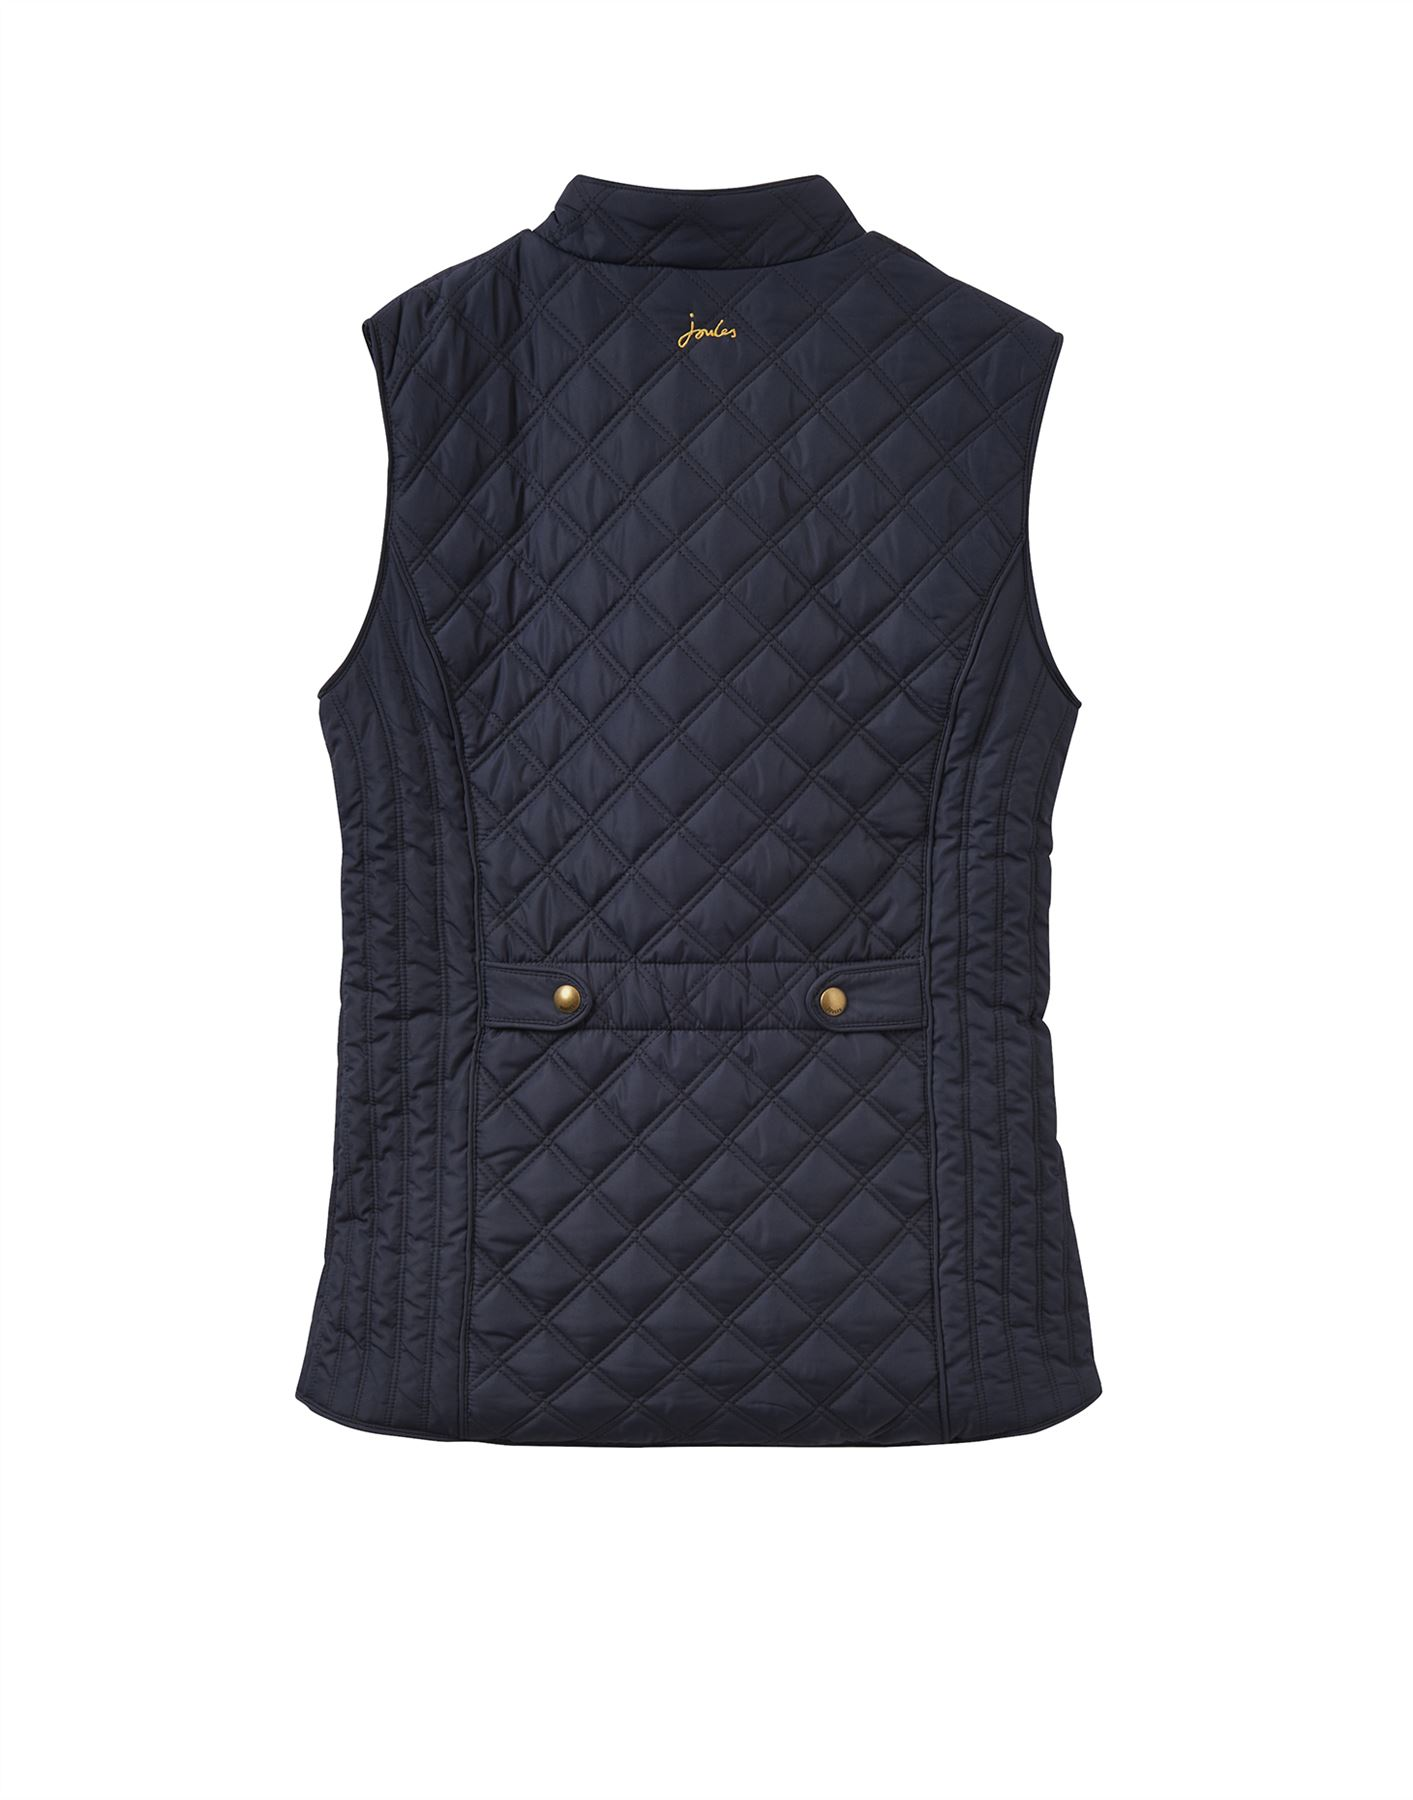 Joules Womens Minx Quilted Gilet Jacket in DEEP FUCHSIA